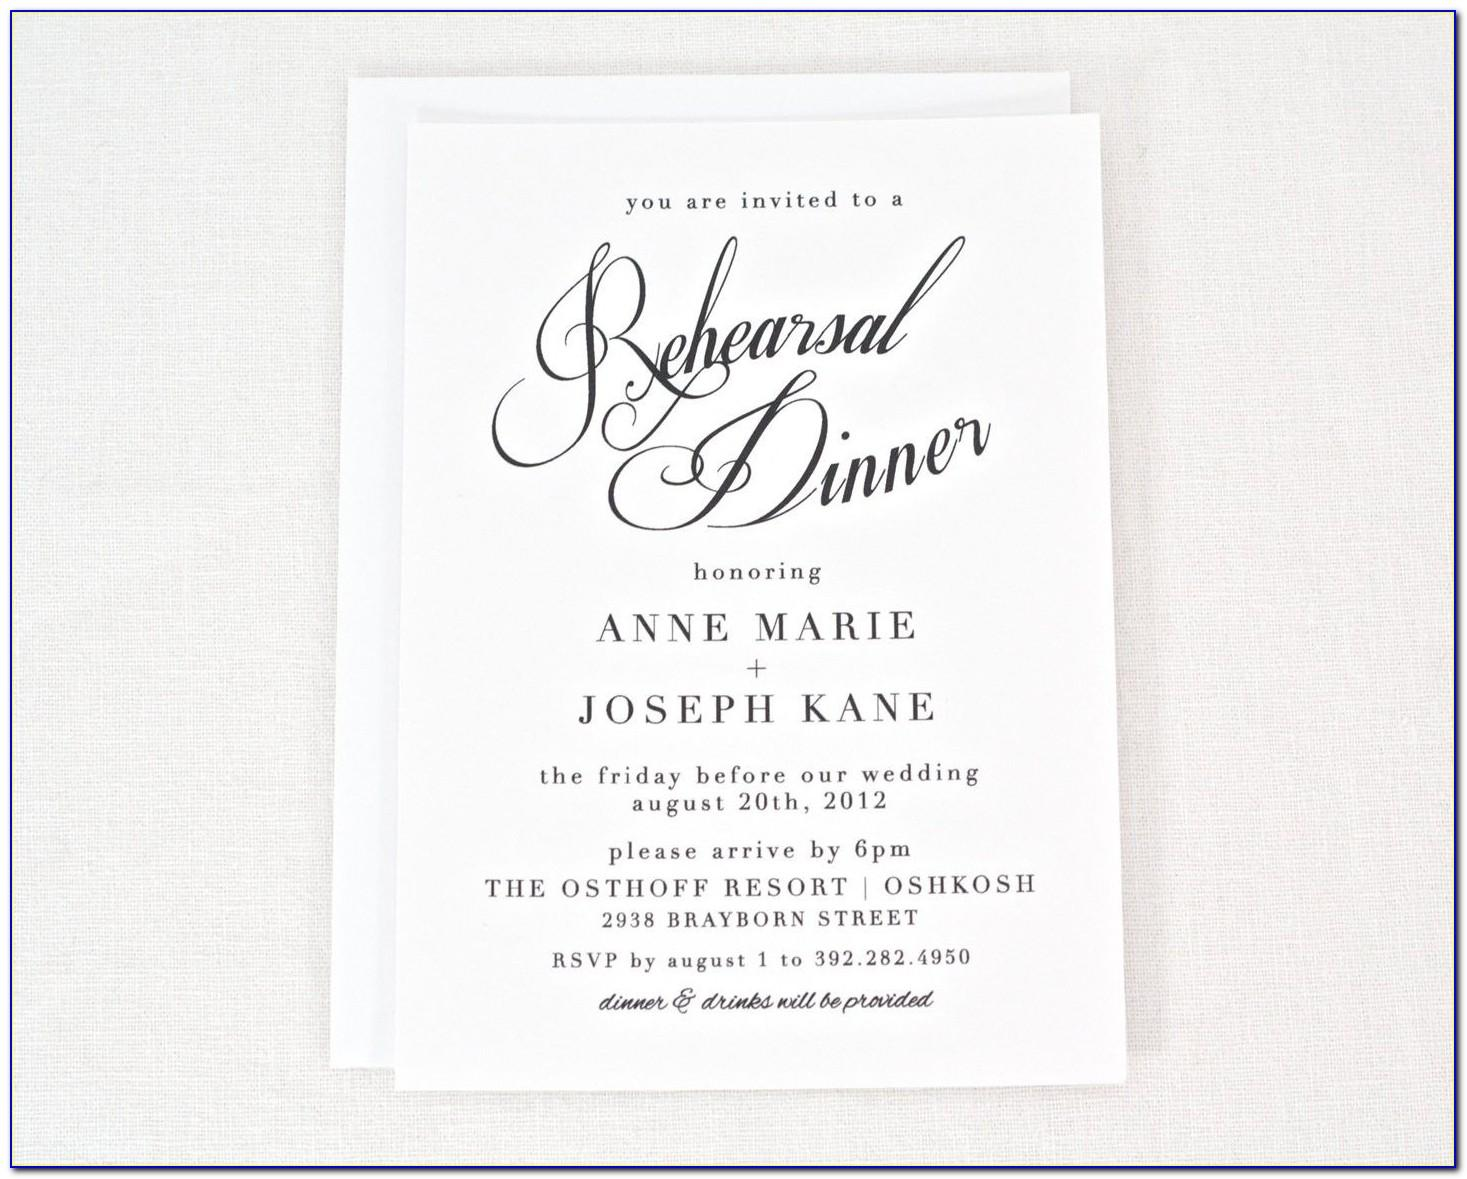 Rehearsal Dinner Invitations Templates